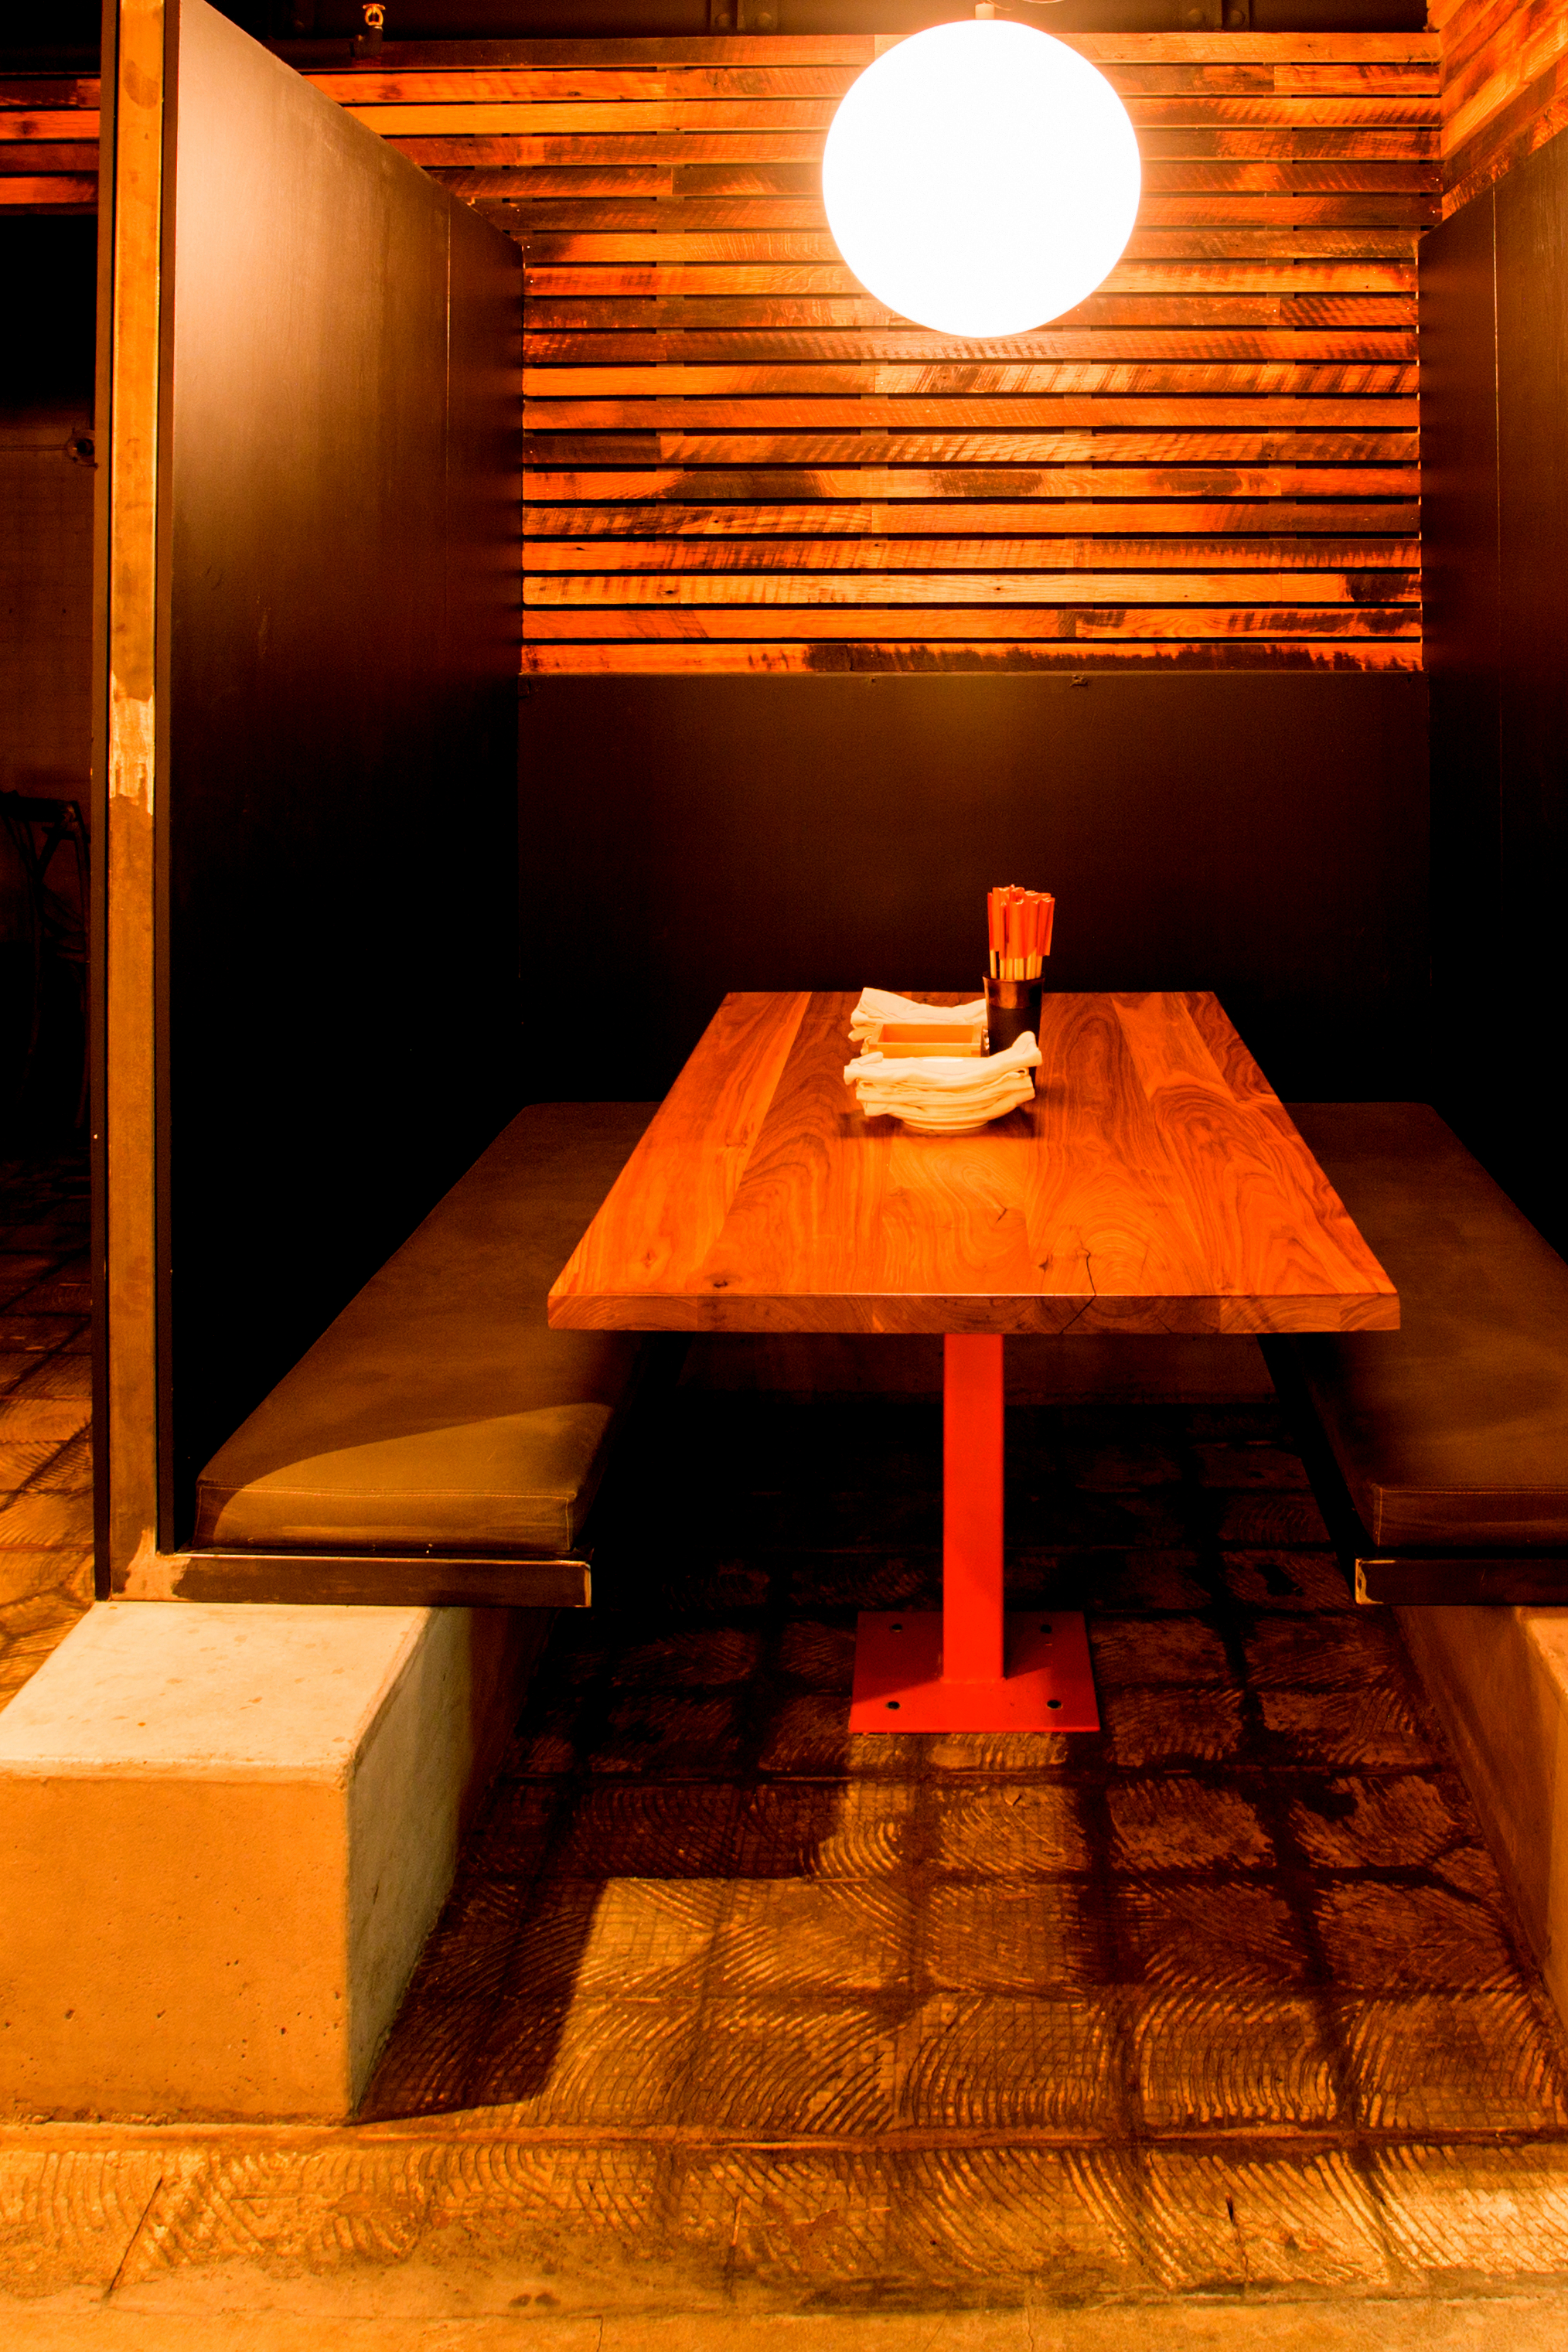 A restaurant project utilizing concrete, steel and wood to set an intimate and textured tone.